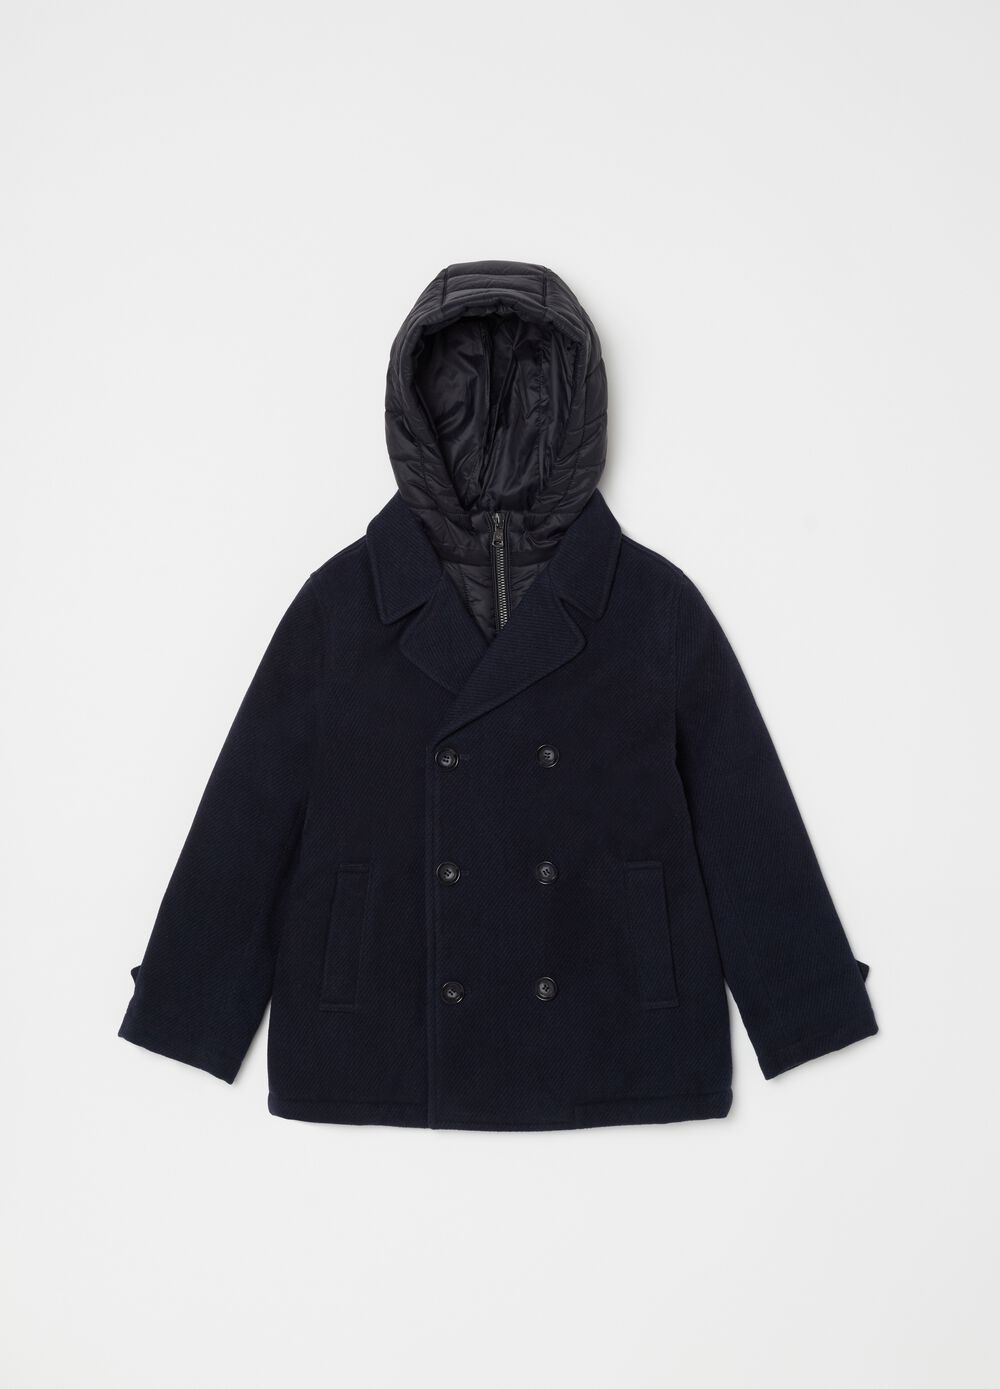 Double-breasted pea coat with hood